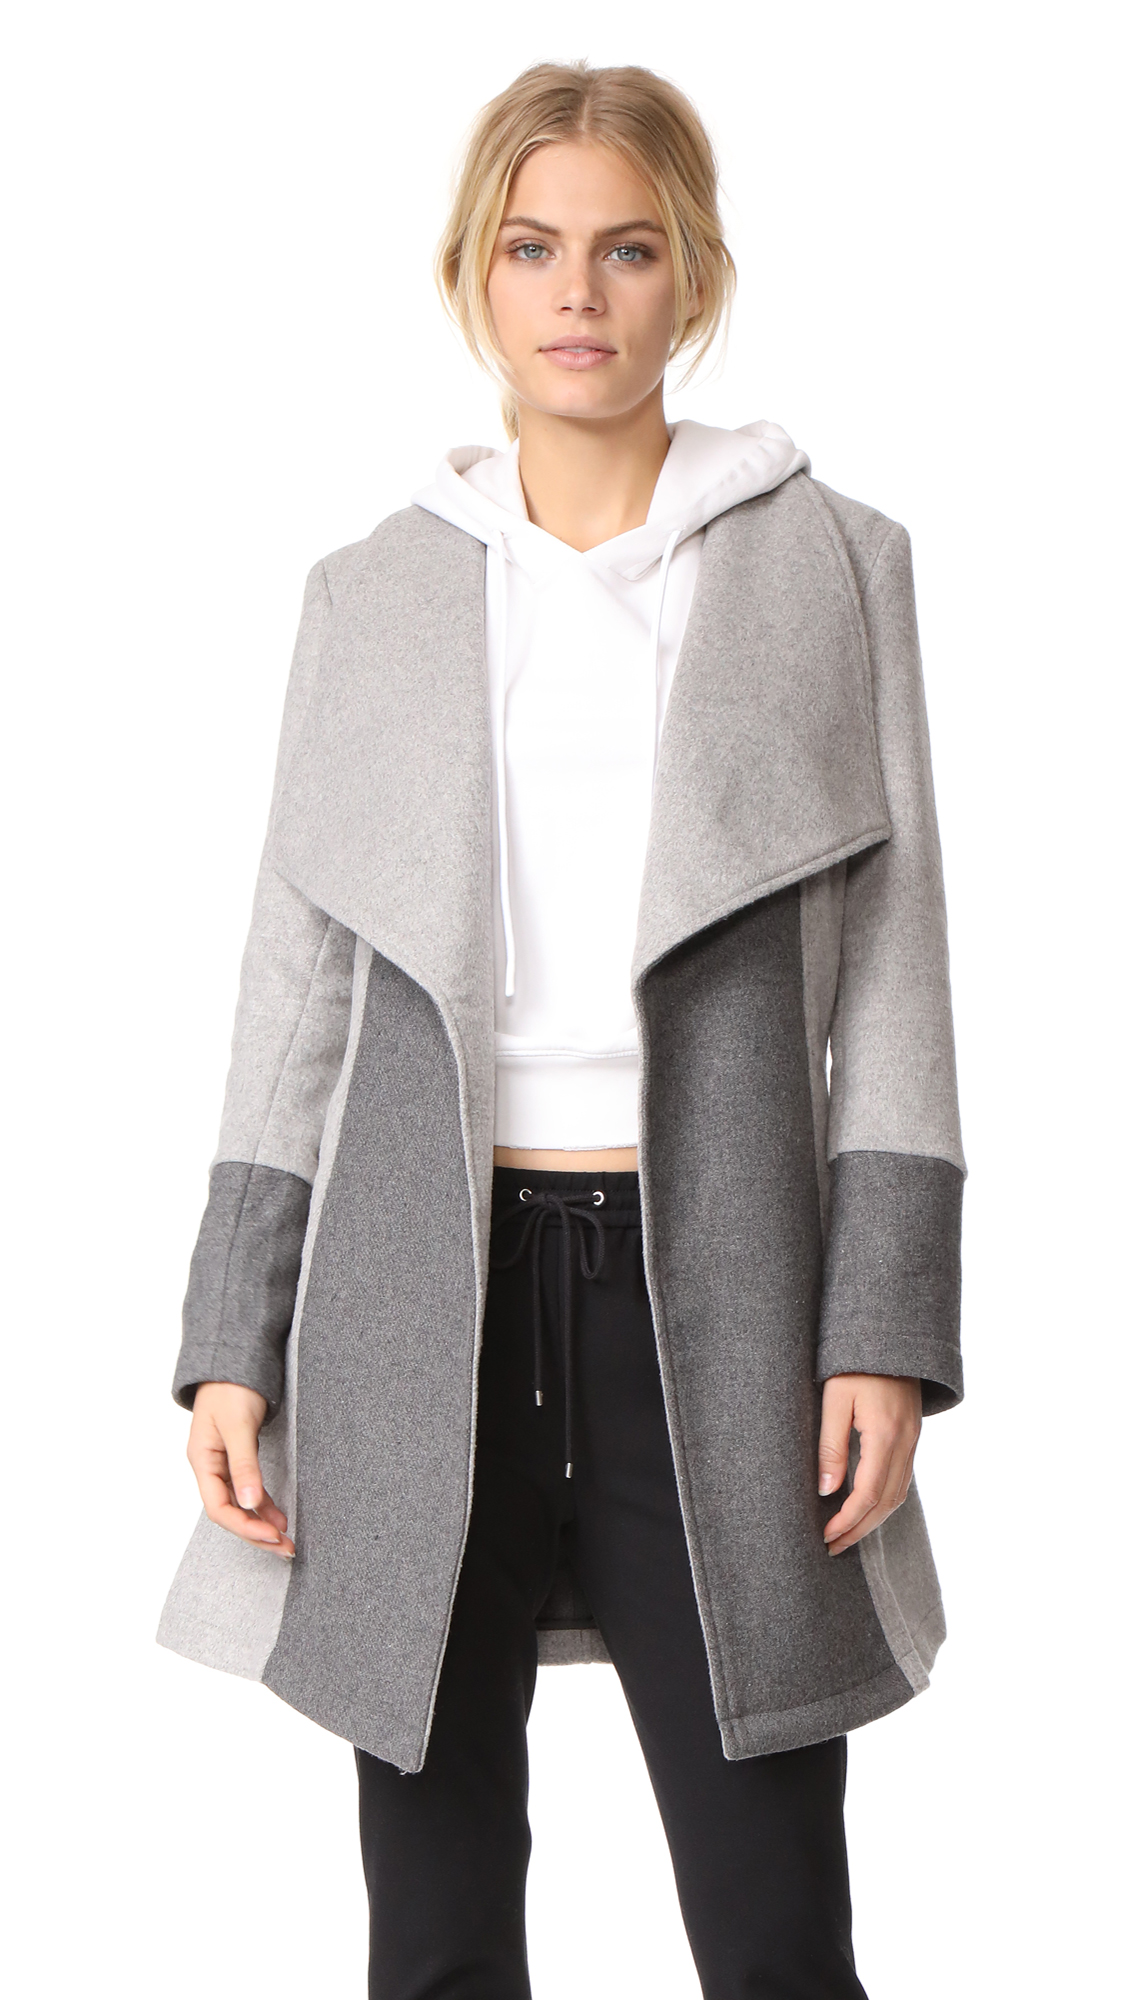 cupcakes and cashmere Akira Colorblocked Wrap Coat - Light Heather Grey